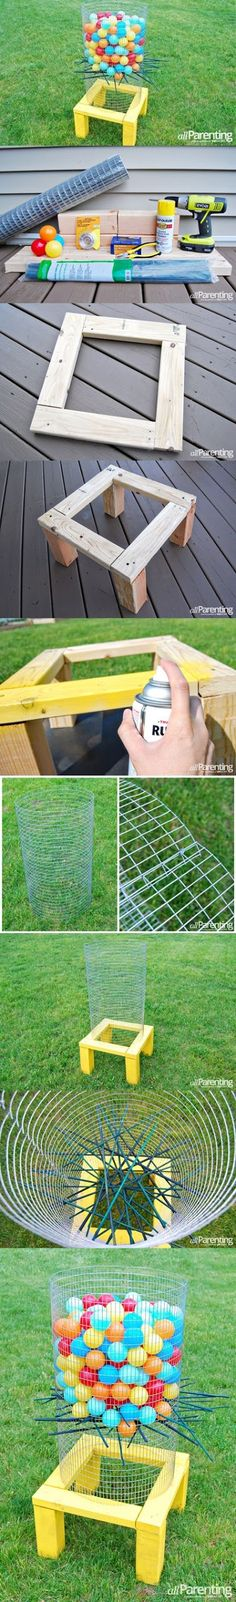 DIY BACKYARD KER PLUNK GAME Outdoor Games AdultsBackyard